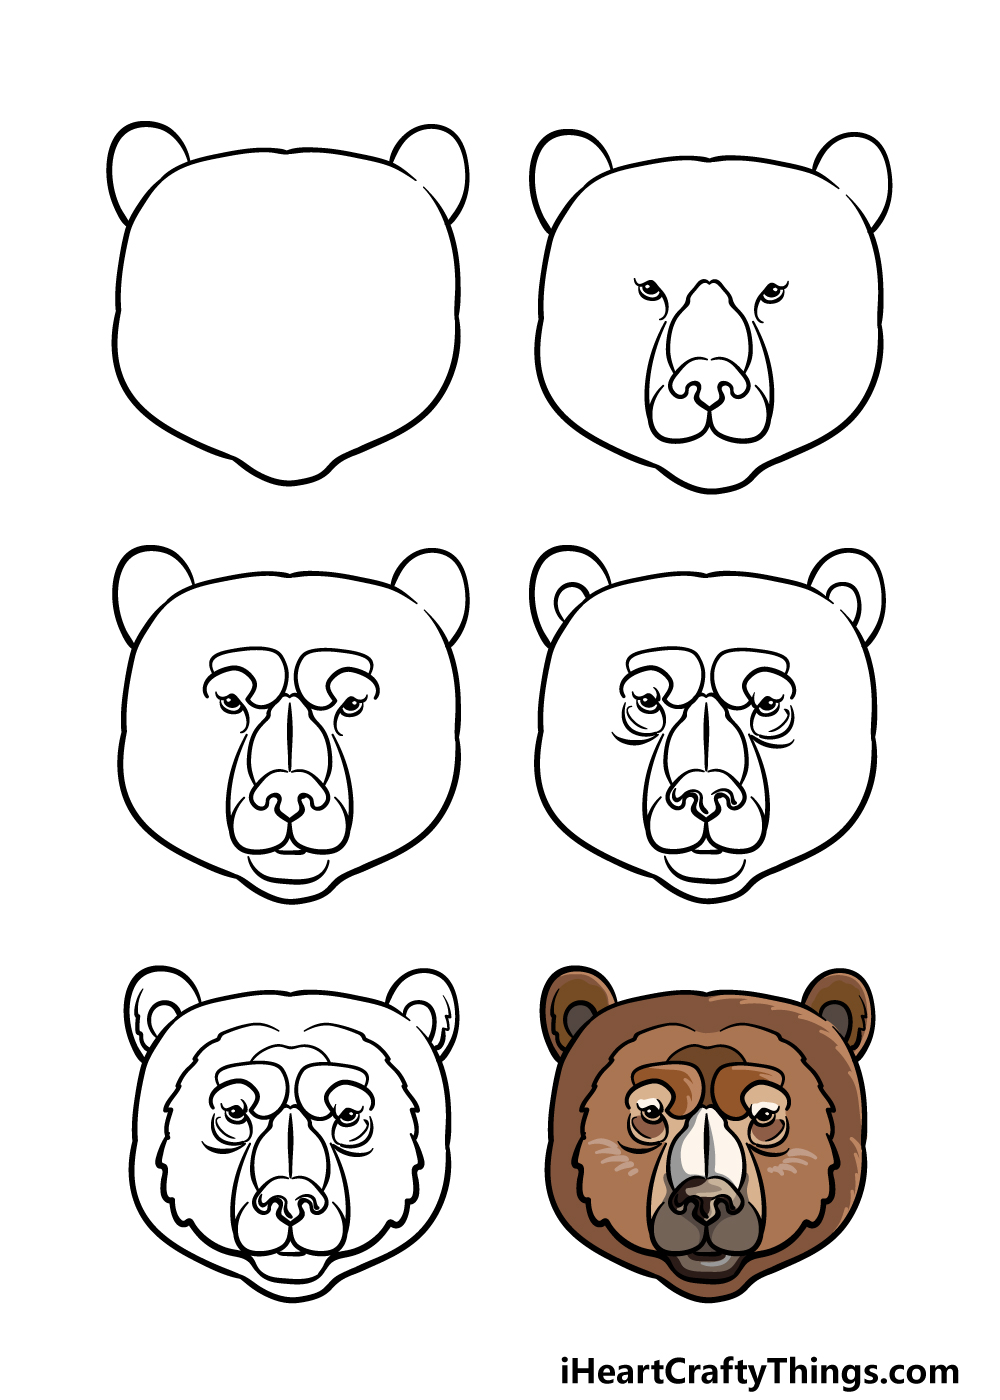 how to draw a bear face in 6 steps